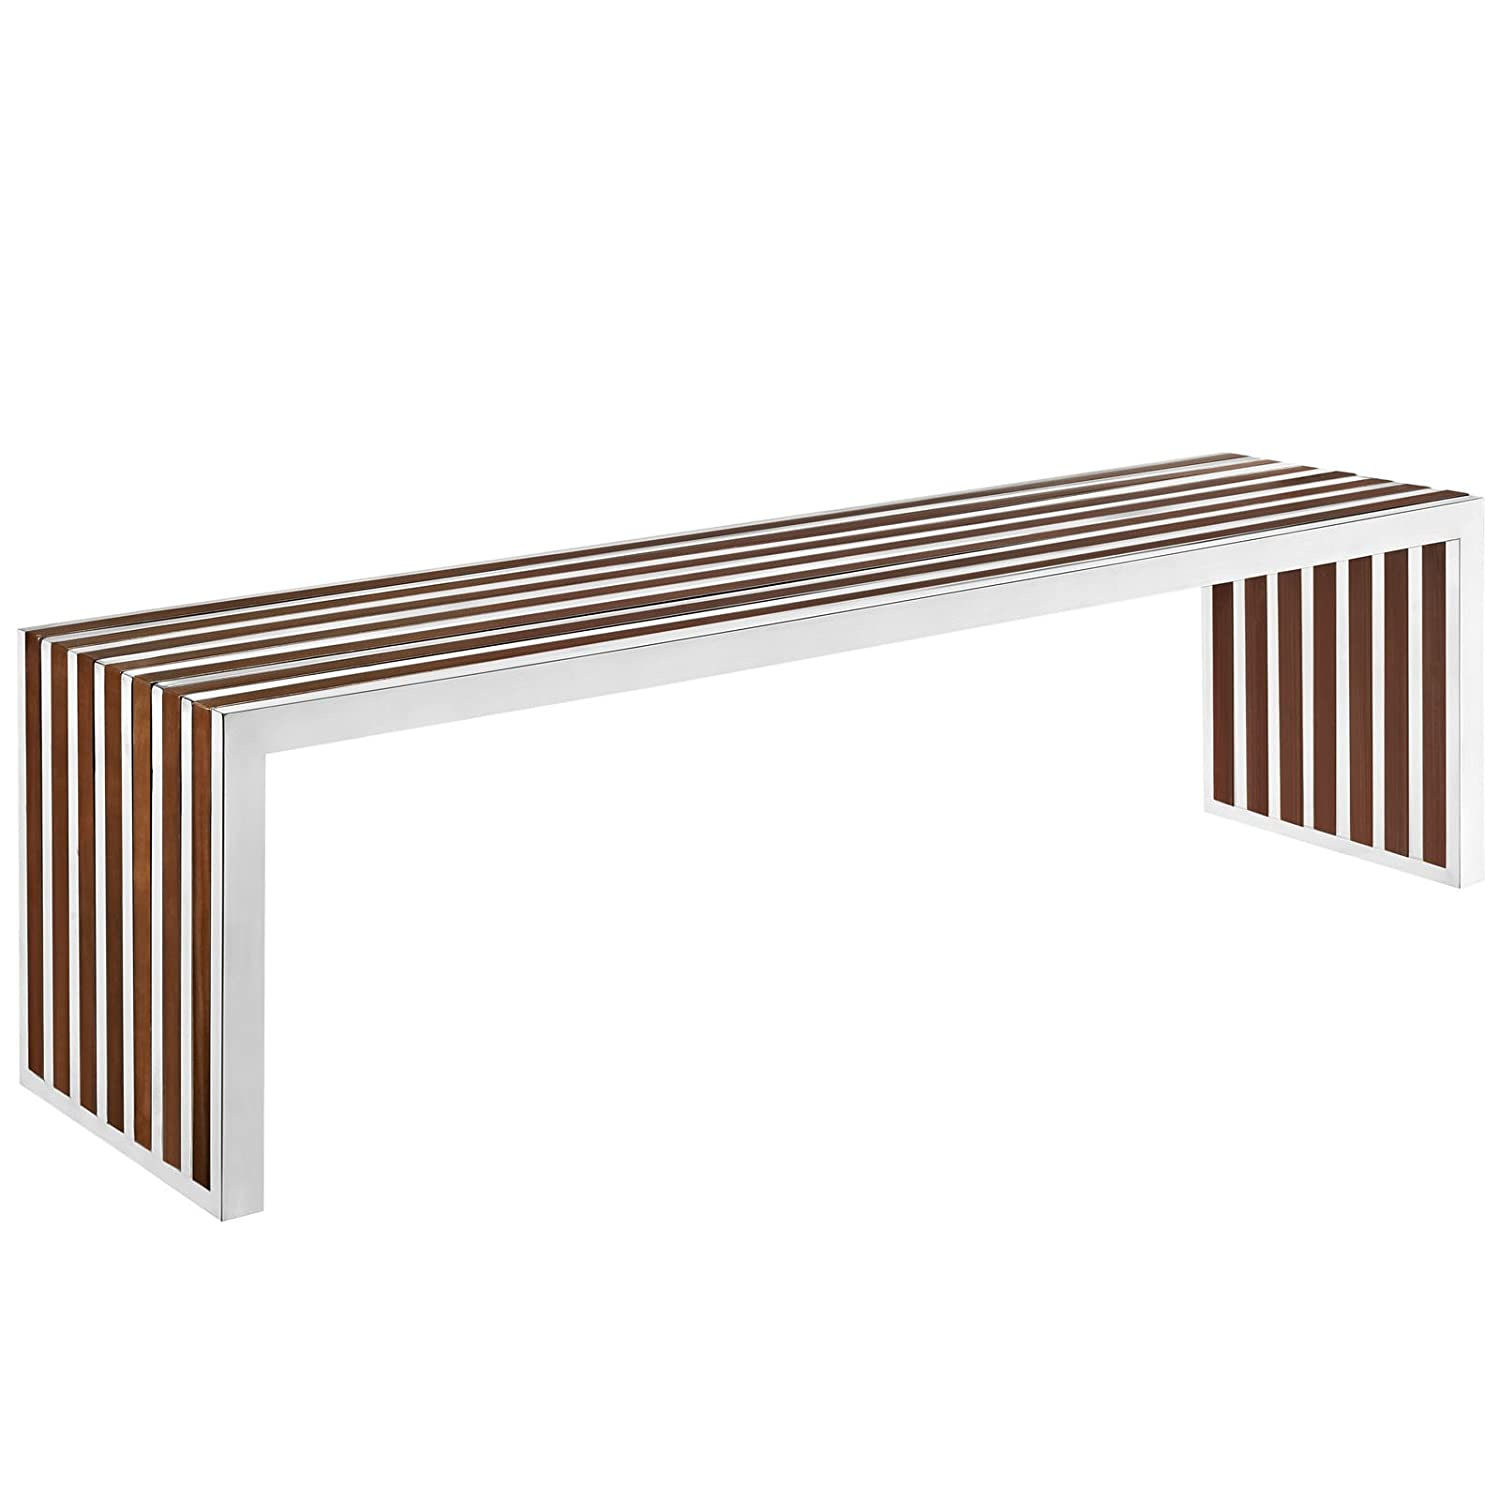 Amazon Modway Gridiron Wood Inlay Bench in Walnut